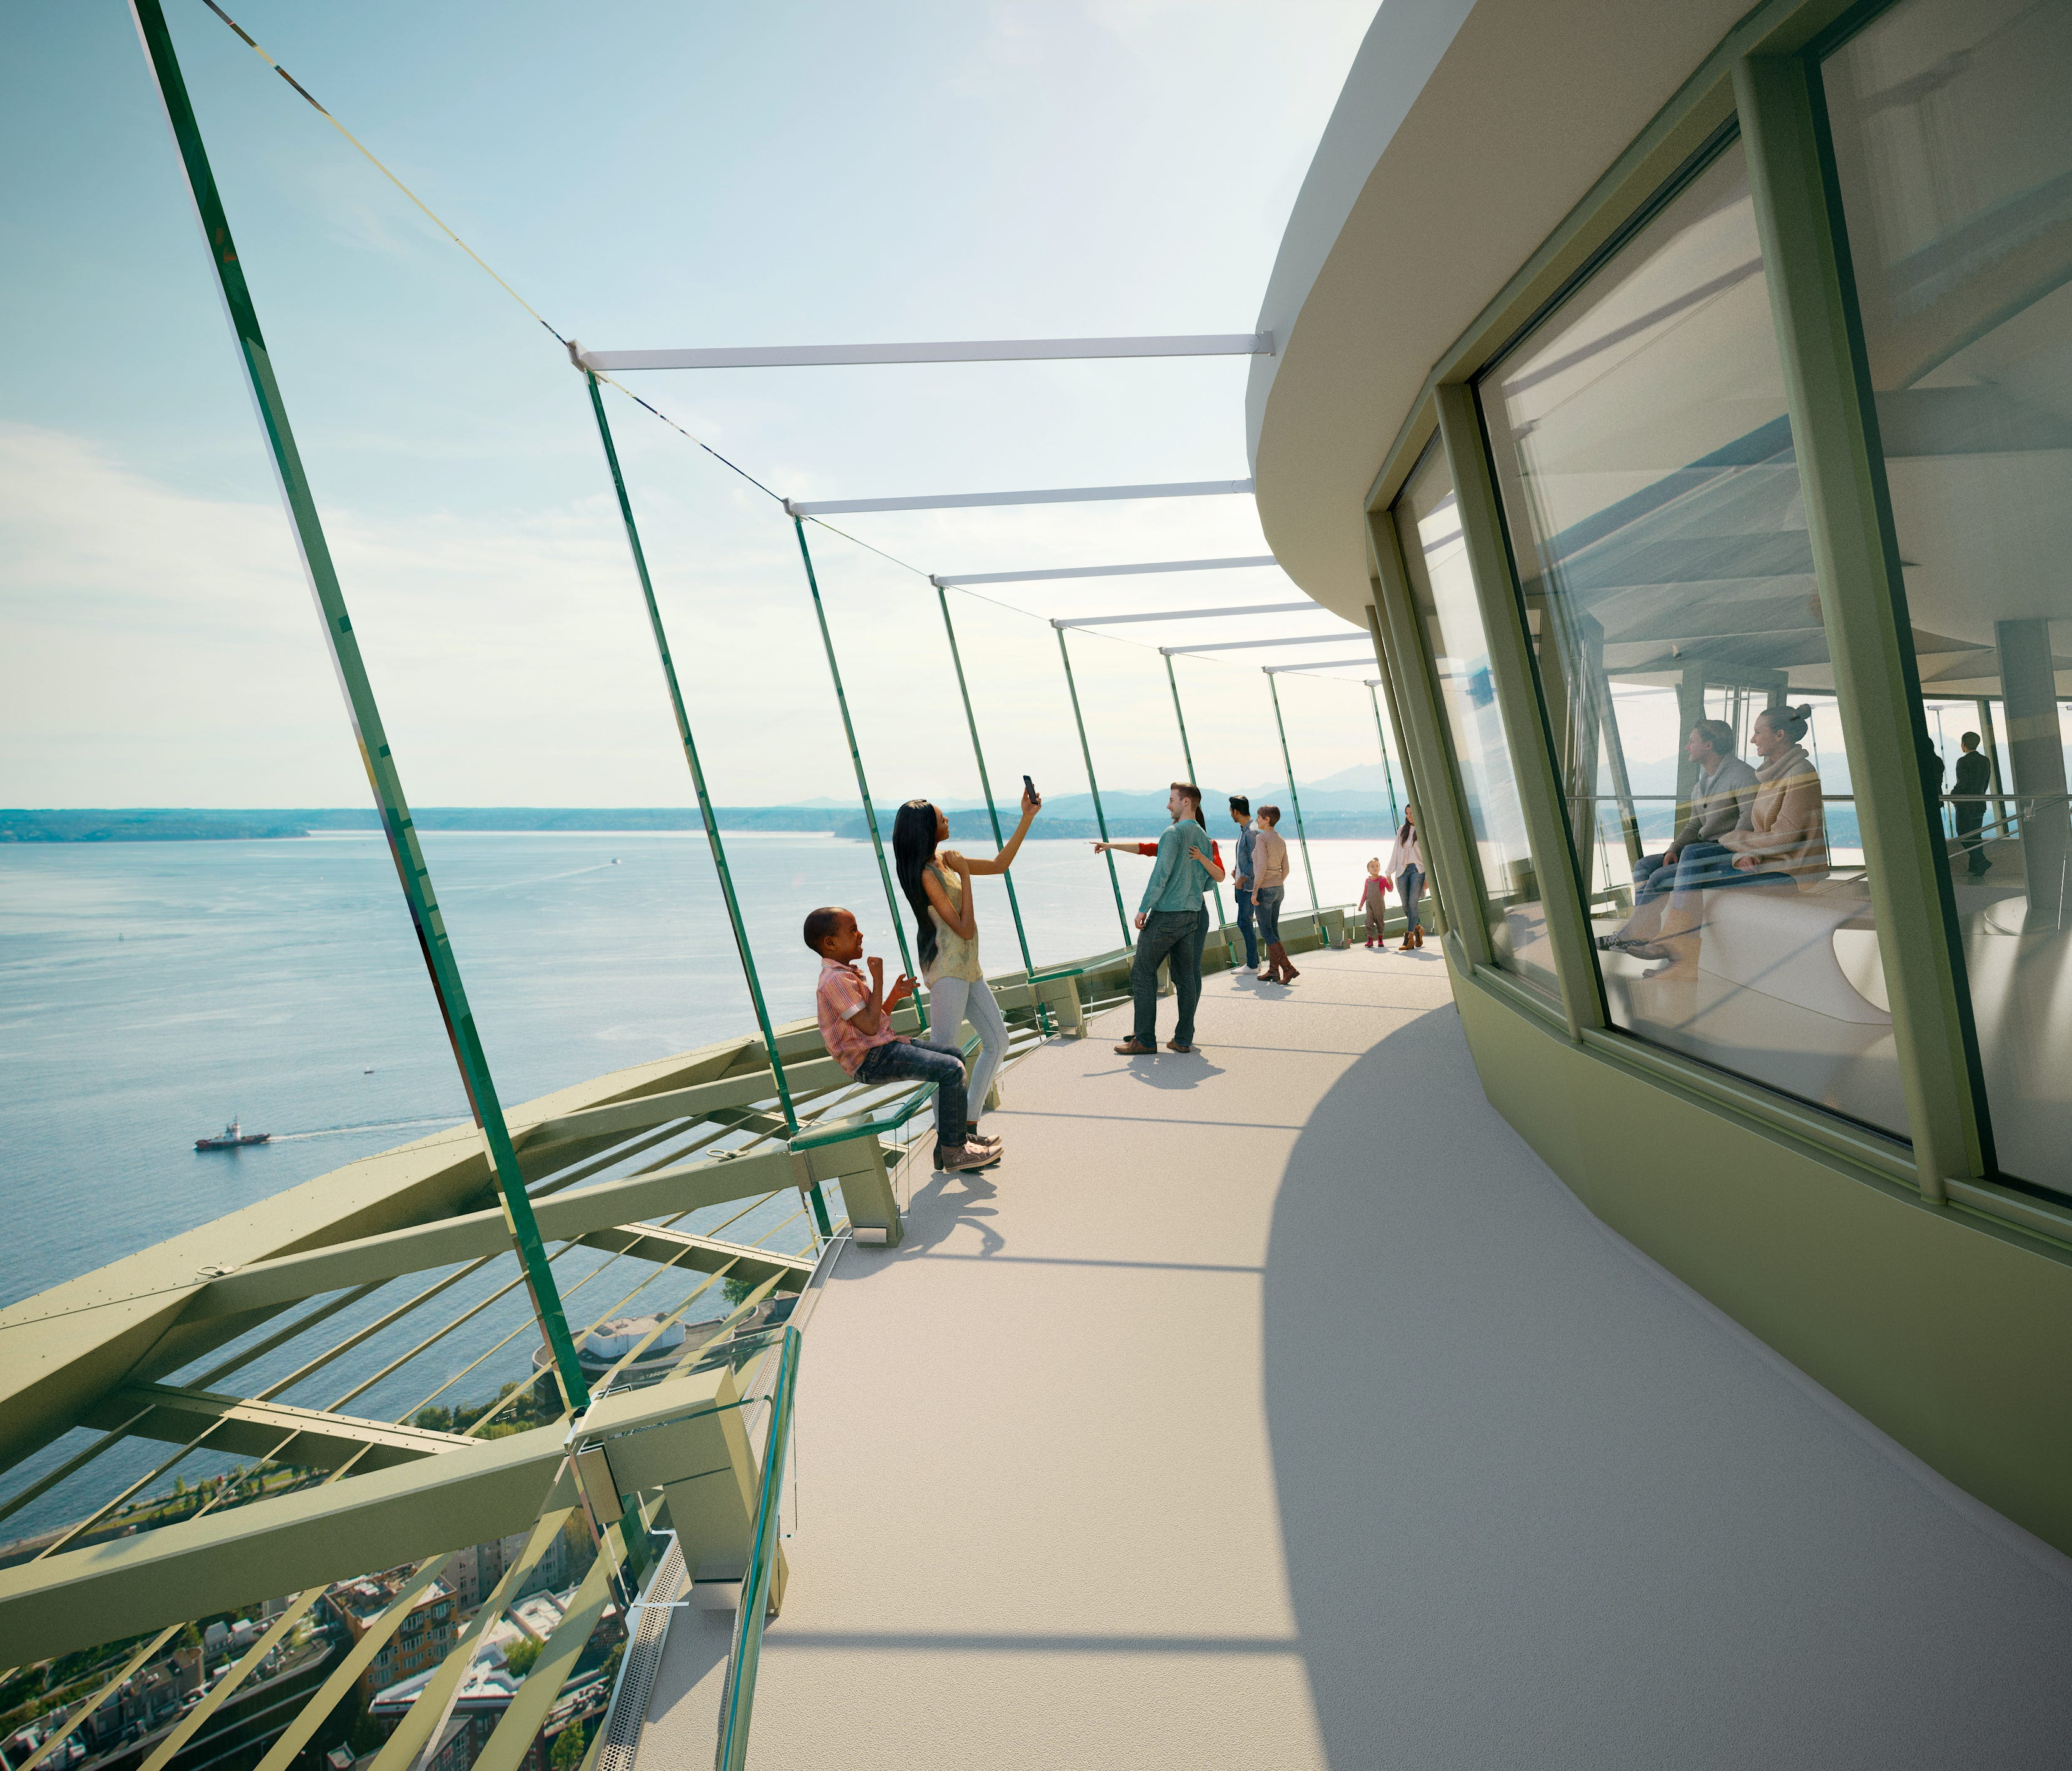 A rendering of the completed Observation Deck.